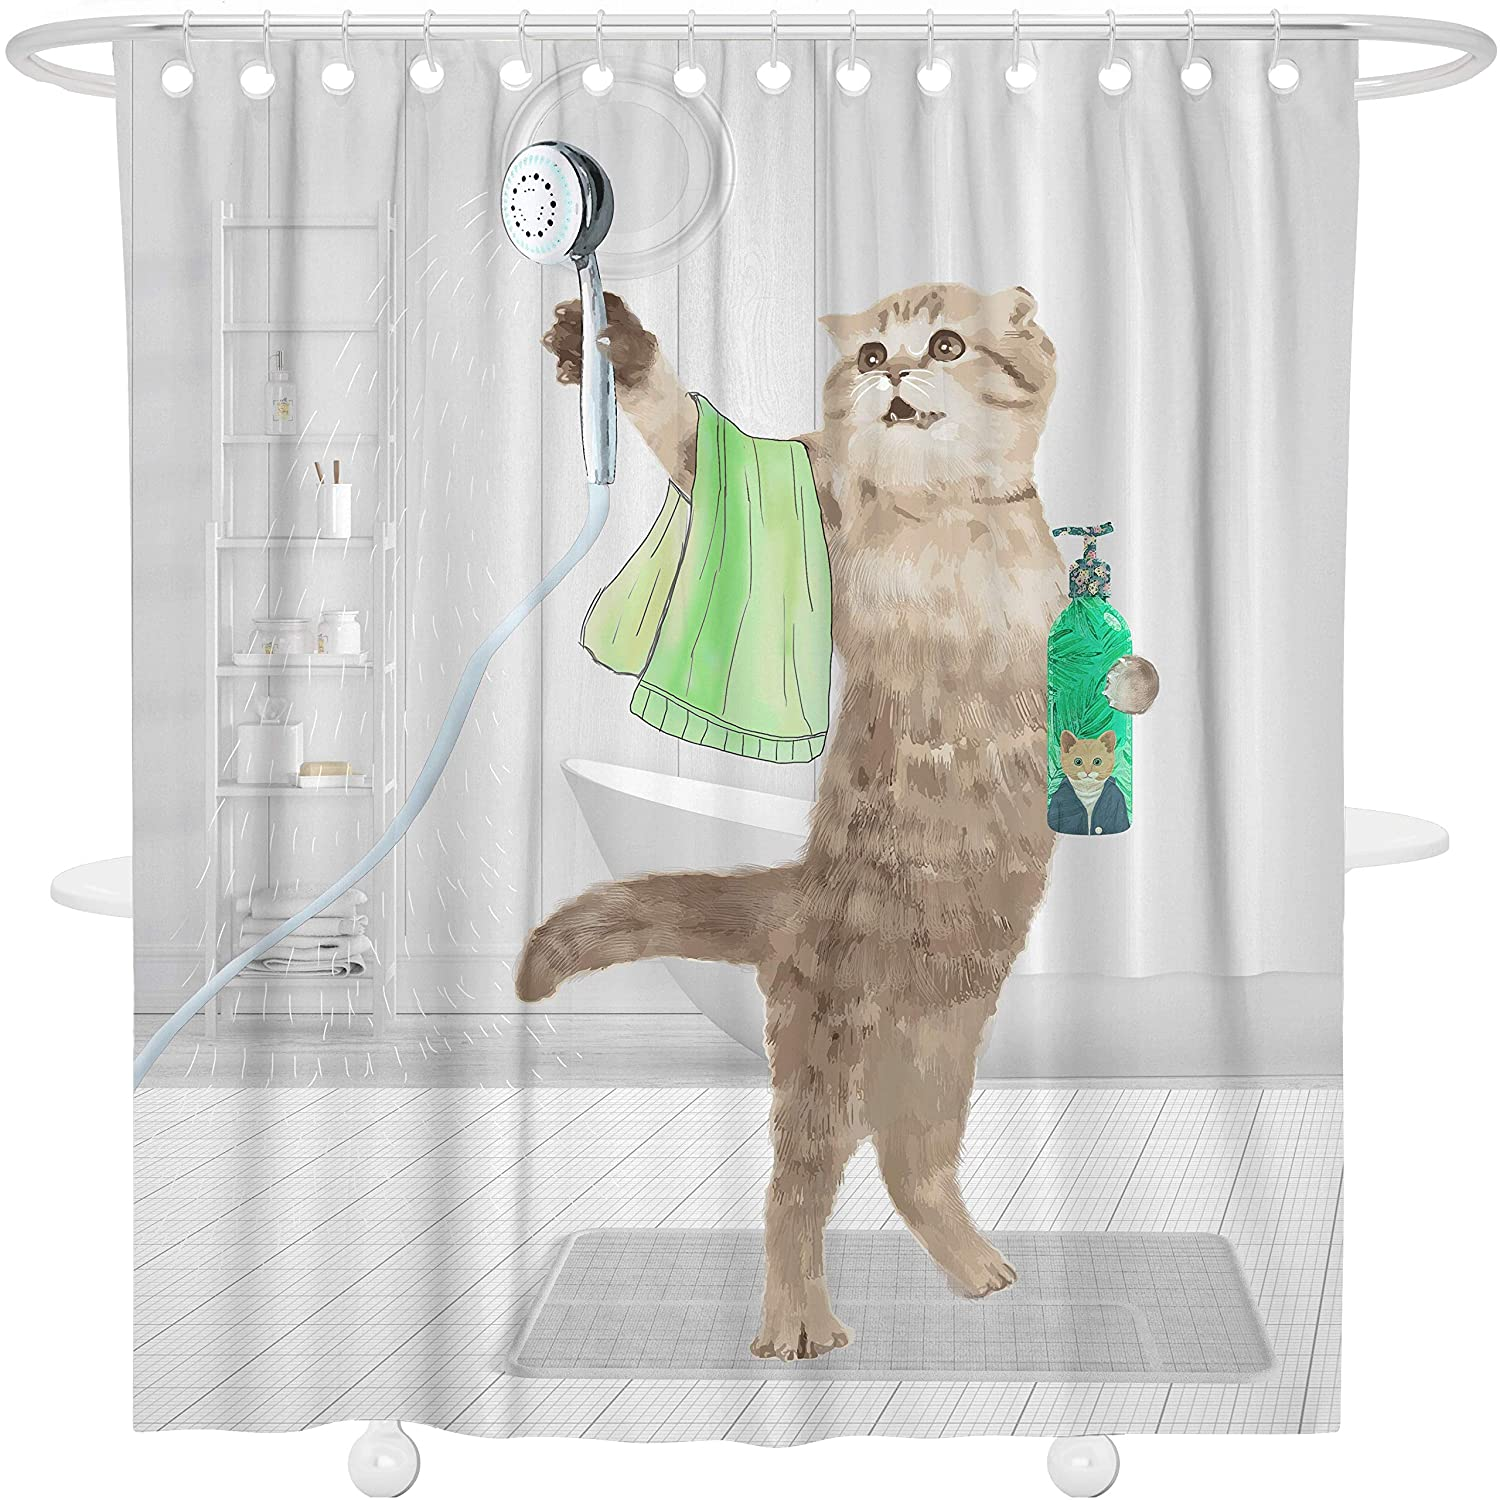 Bonsai Tree Cat Shower Curtain, Animal Fabric Bathroom Decor Set,Clear-Non Toxic,Eco-Friendly,No Chemical Odor,Rust Proof Grommets Funny Cat Taking a Shower Bath Curtain with Hooks, 66x72 Inches